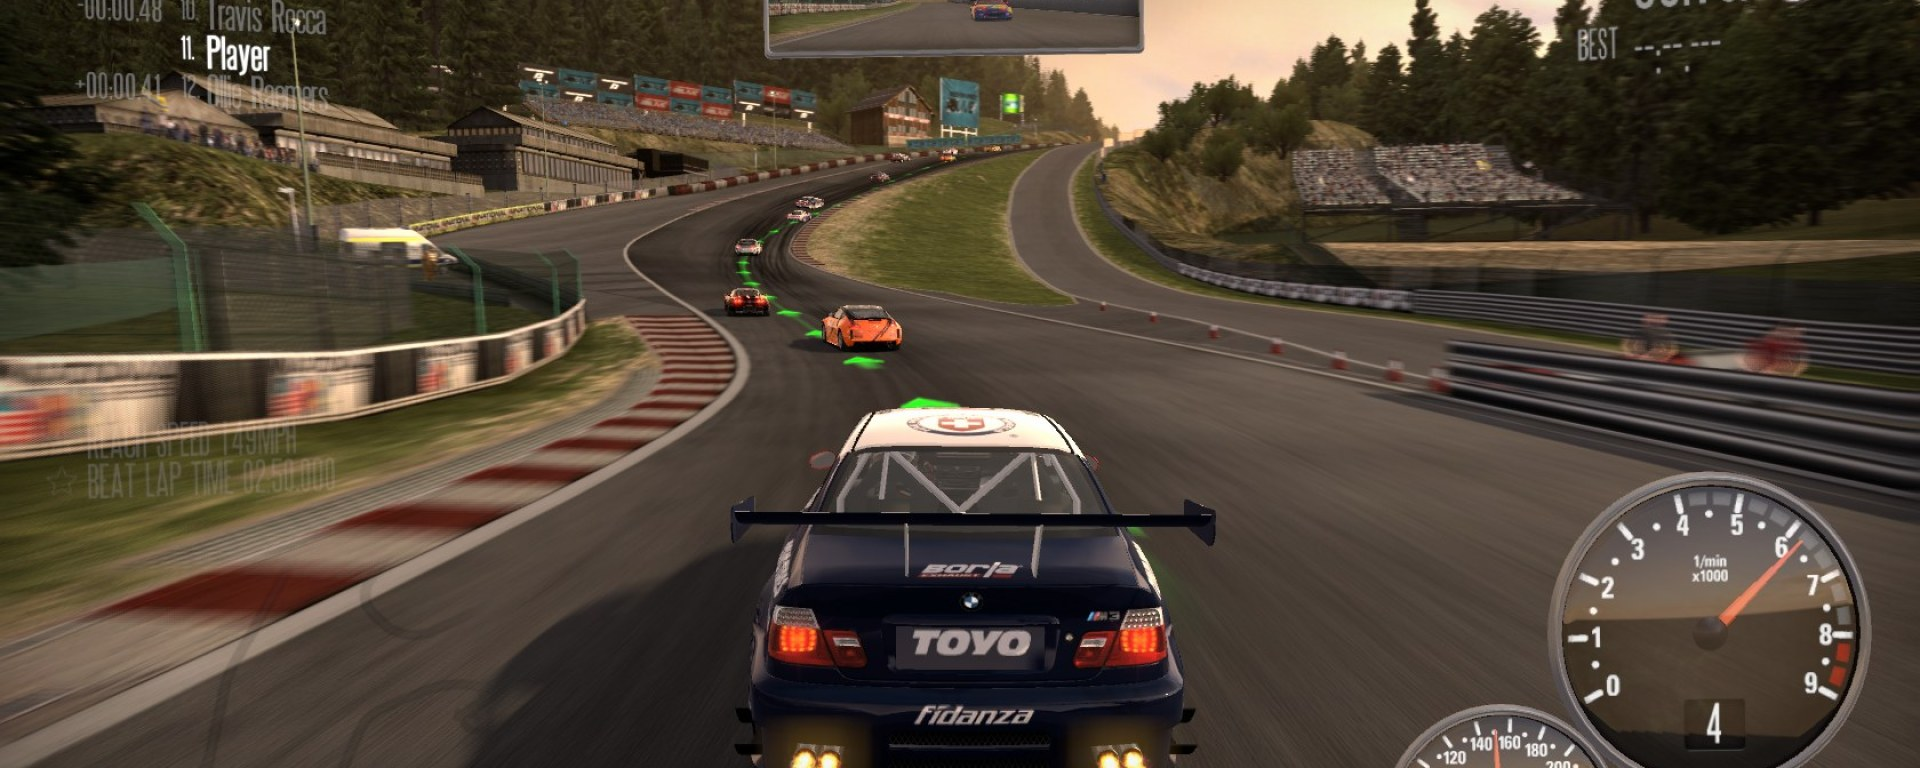 Free Need For Speed Car Game Download Maibackvi1993 Blog